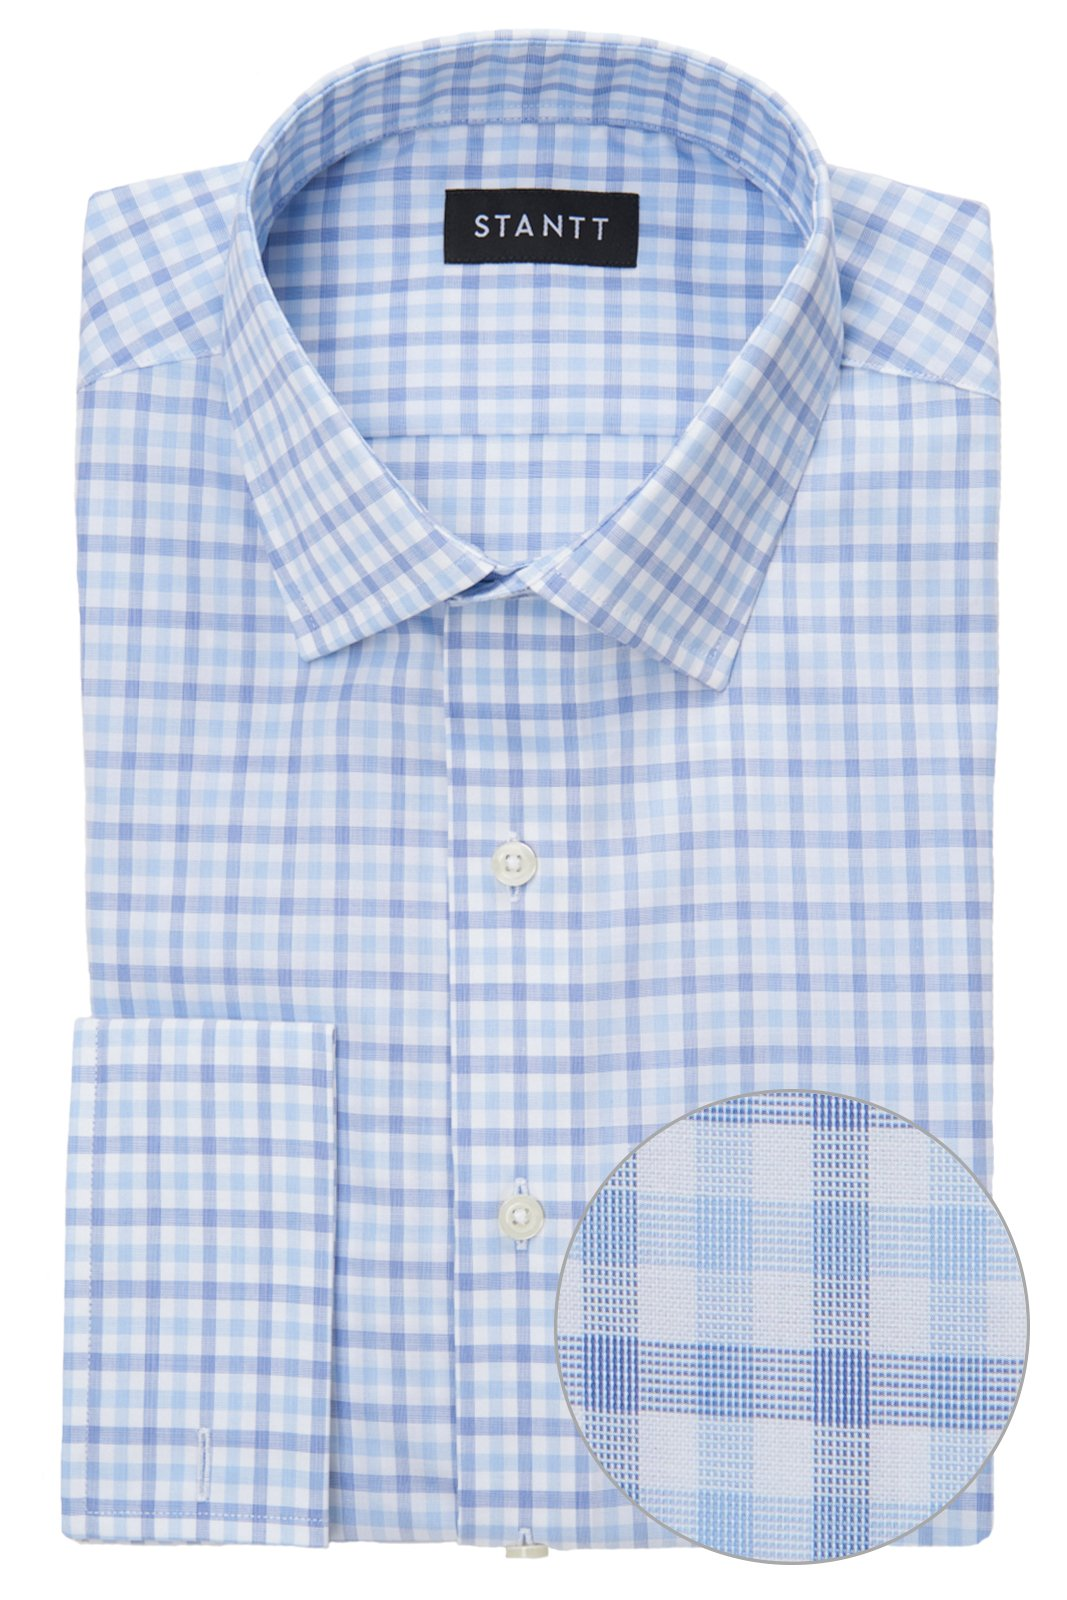 Wrinkle-Resistant Blue Cross Weave Tattersall: Modified-Spread Collar, French Cuff